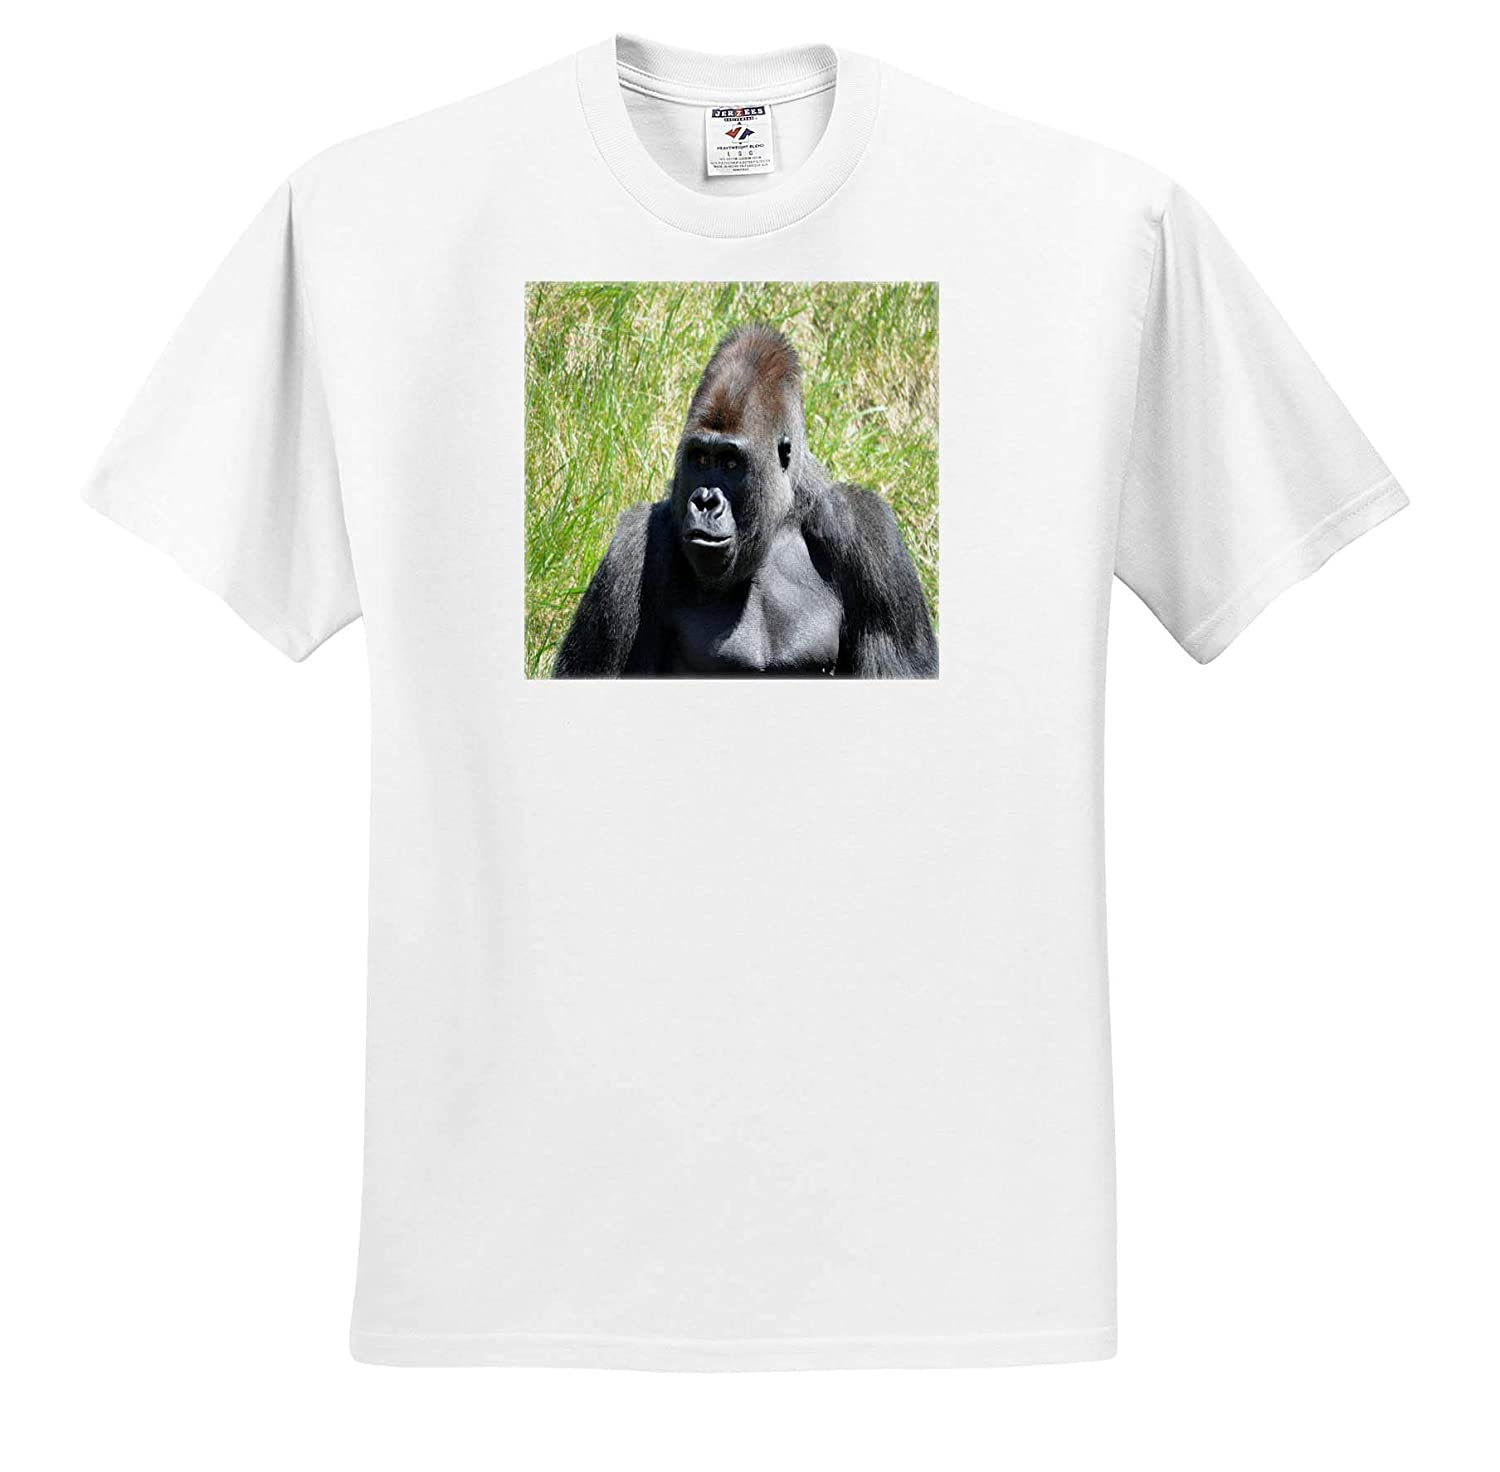 3dRose Dreamscapes by Leslie Adult T-Shirt XL Animals Silverback Gorilla Chip ts/_314298